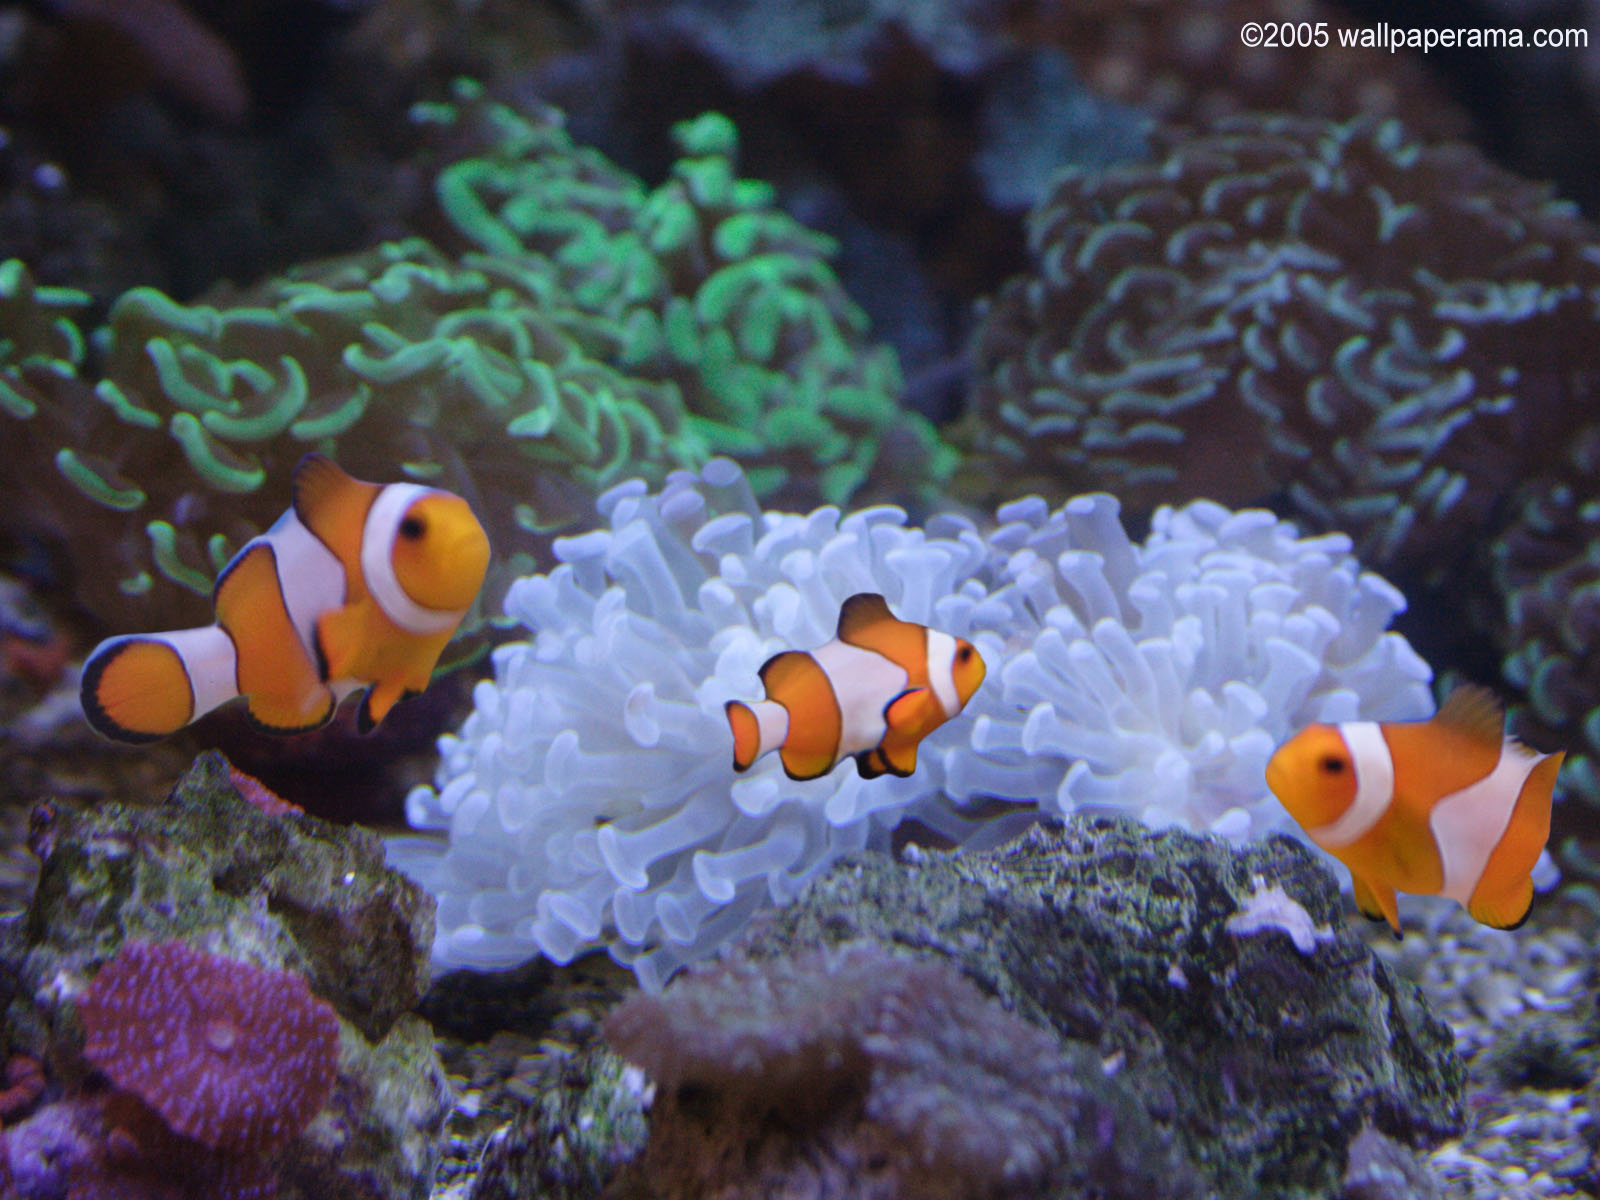 Clown fish aquarium wallpaper free hd backgrounds images for Clown fish for sale